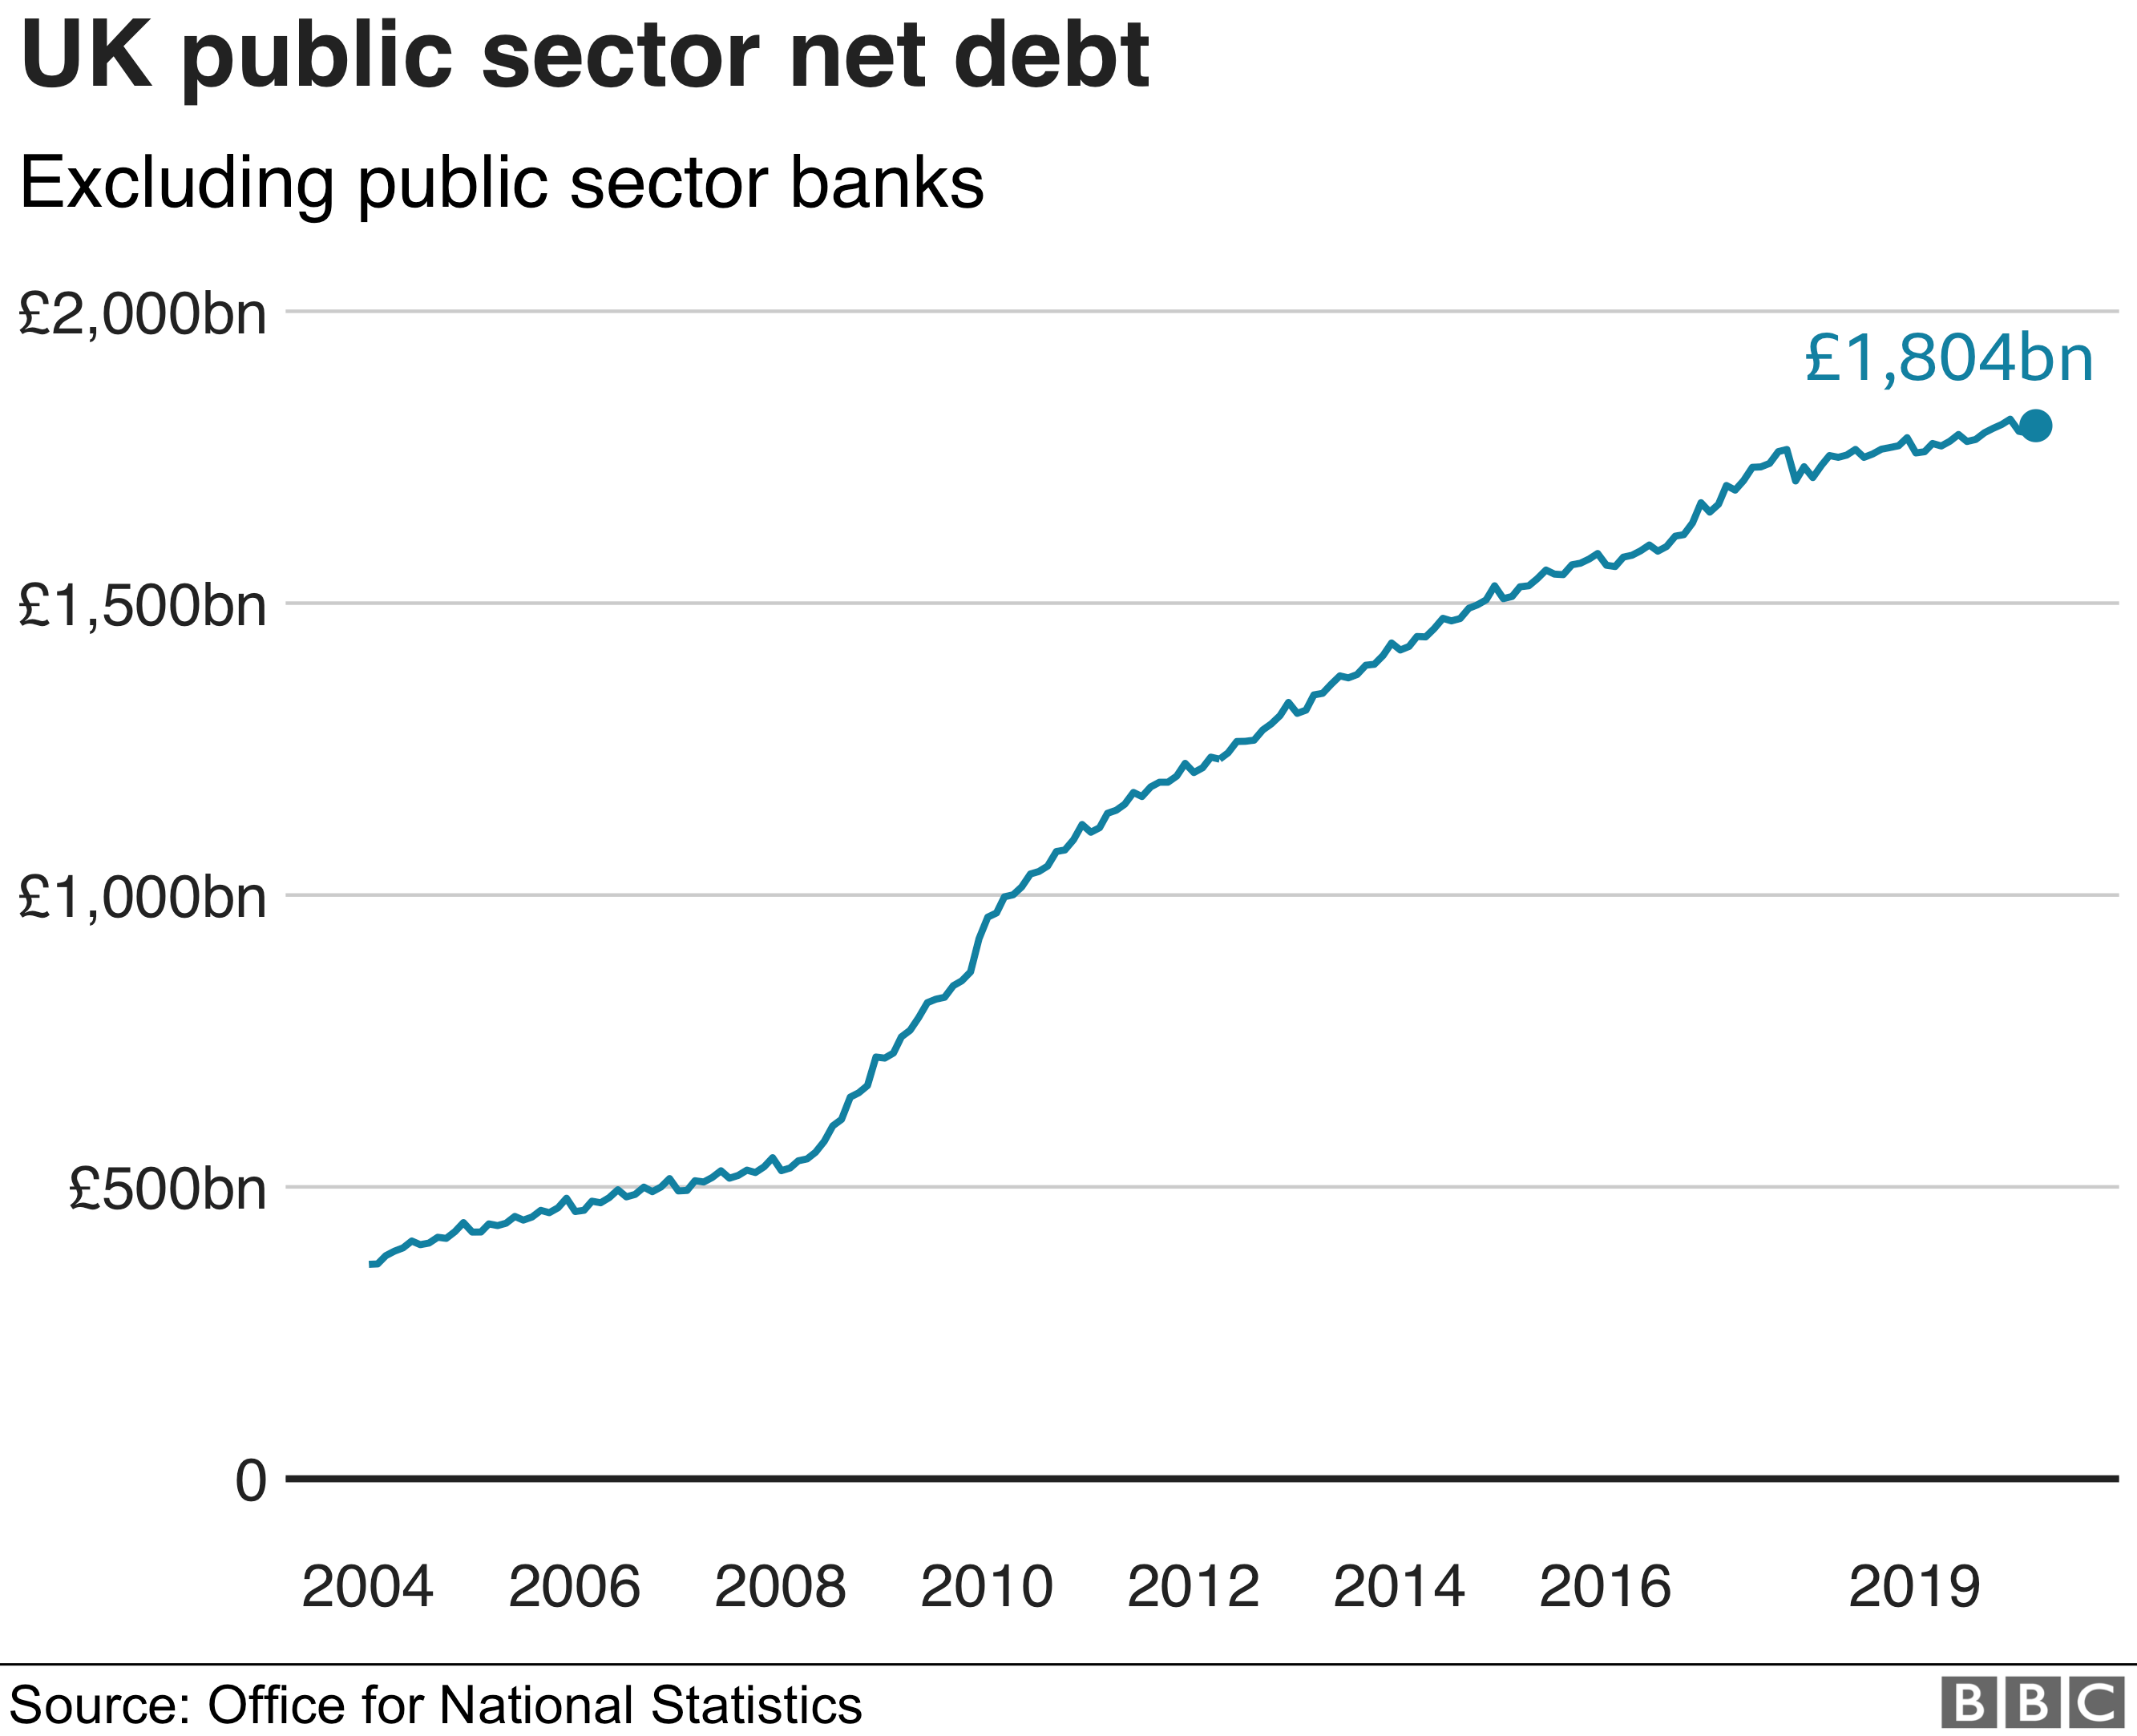 The total net debt for the UK public sector